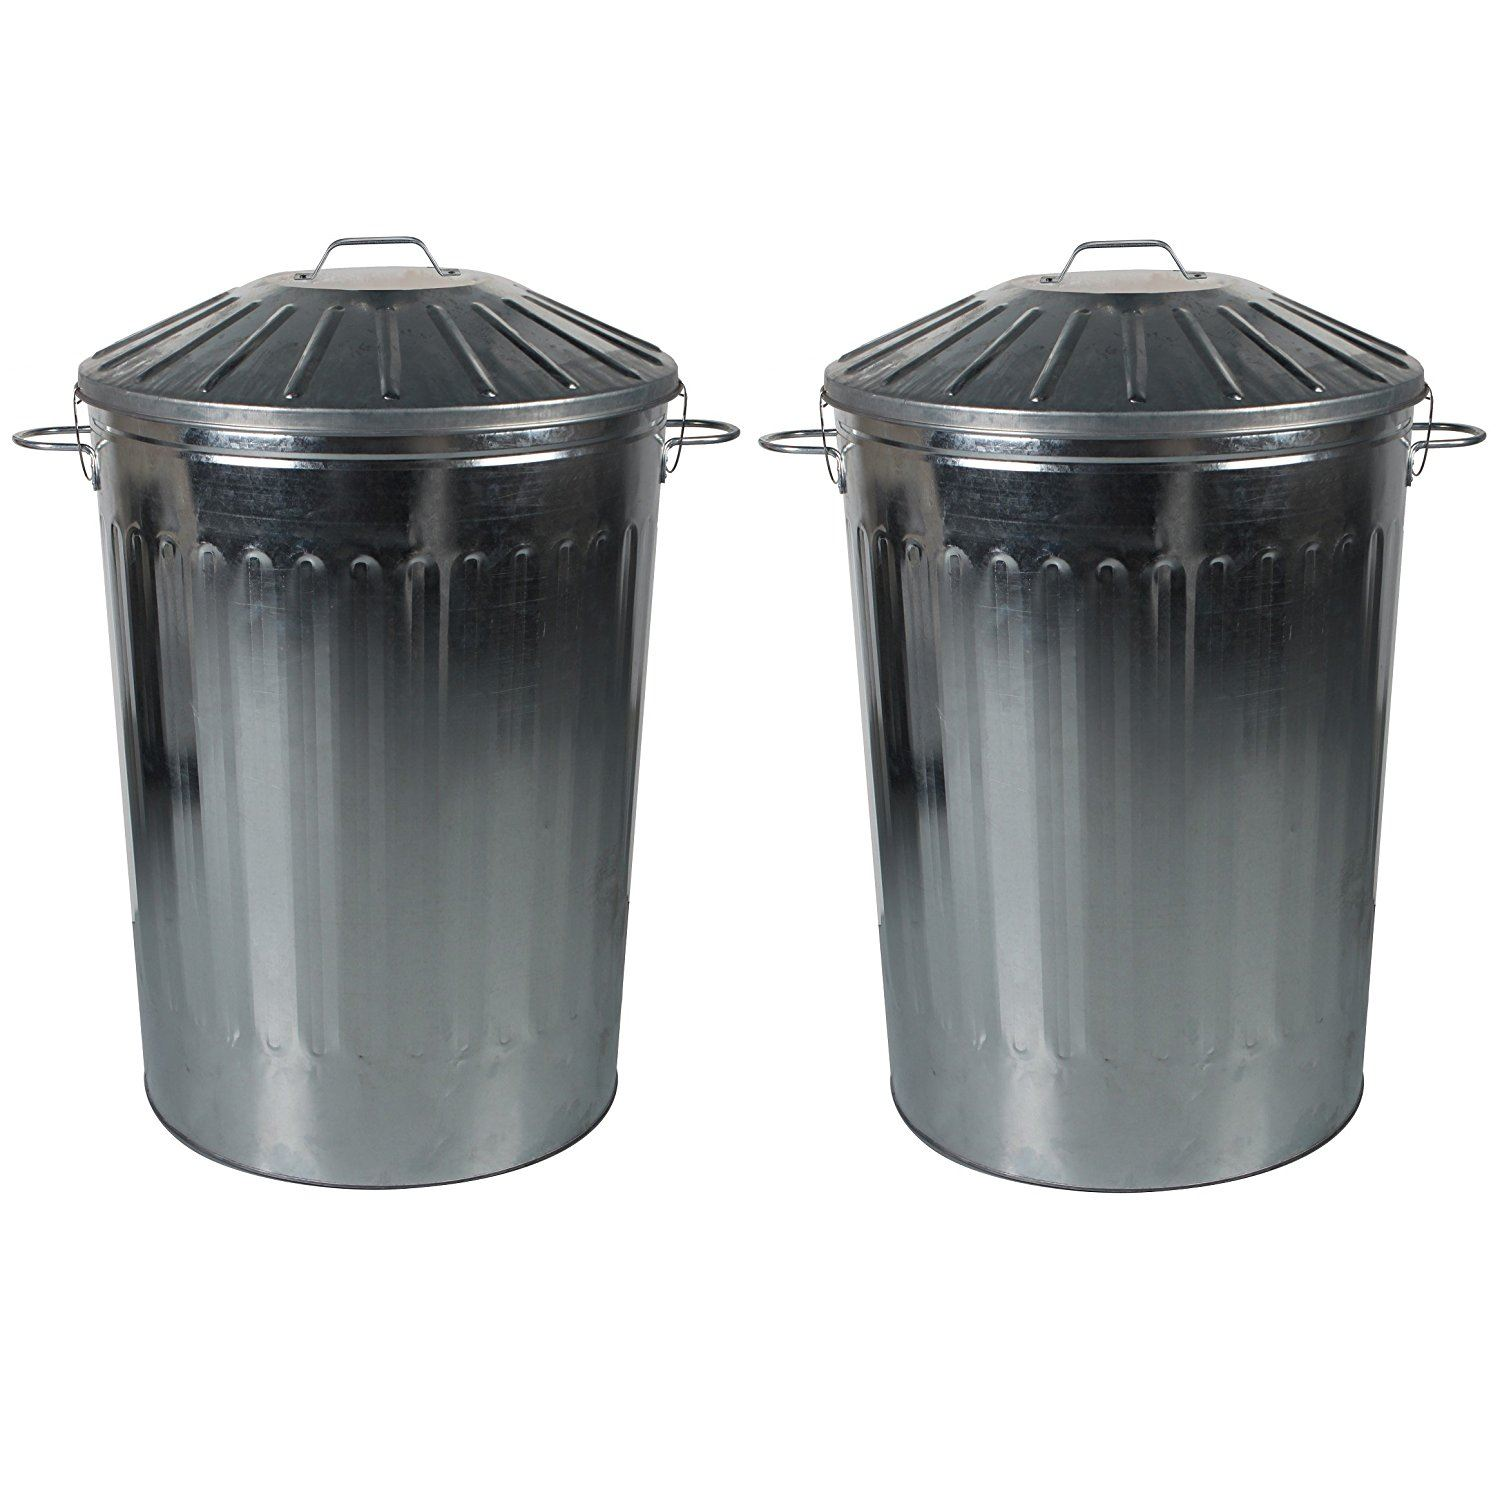 2 x 125l extra large metal dustbin home garden unit bin with special locking lid ebay. Black Bedroom Furniture Sets. Home Design Ideas